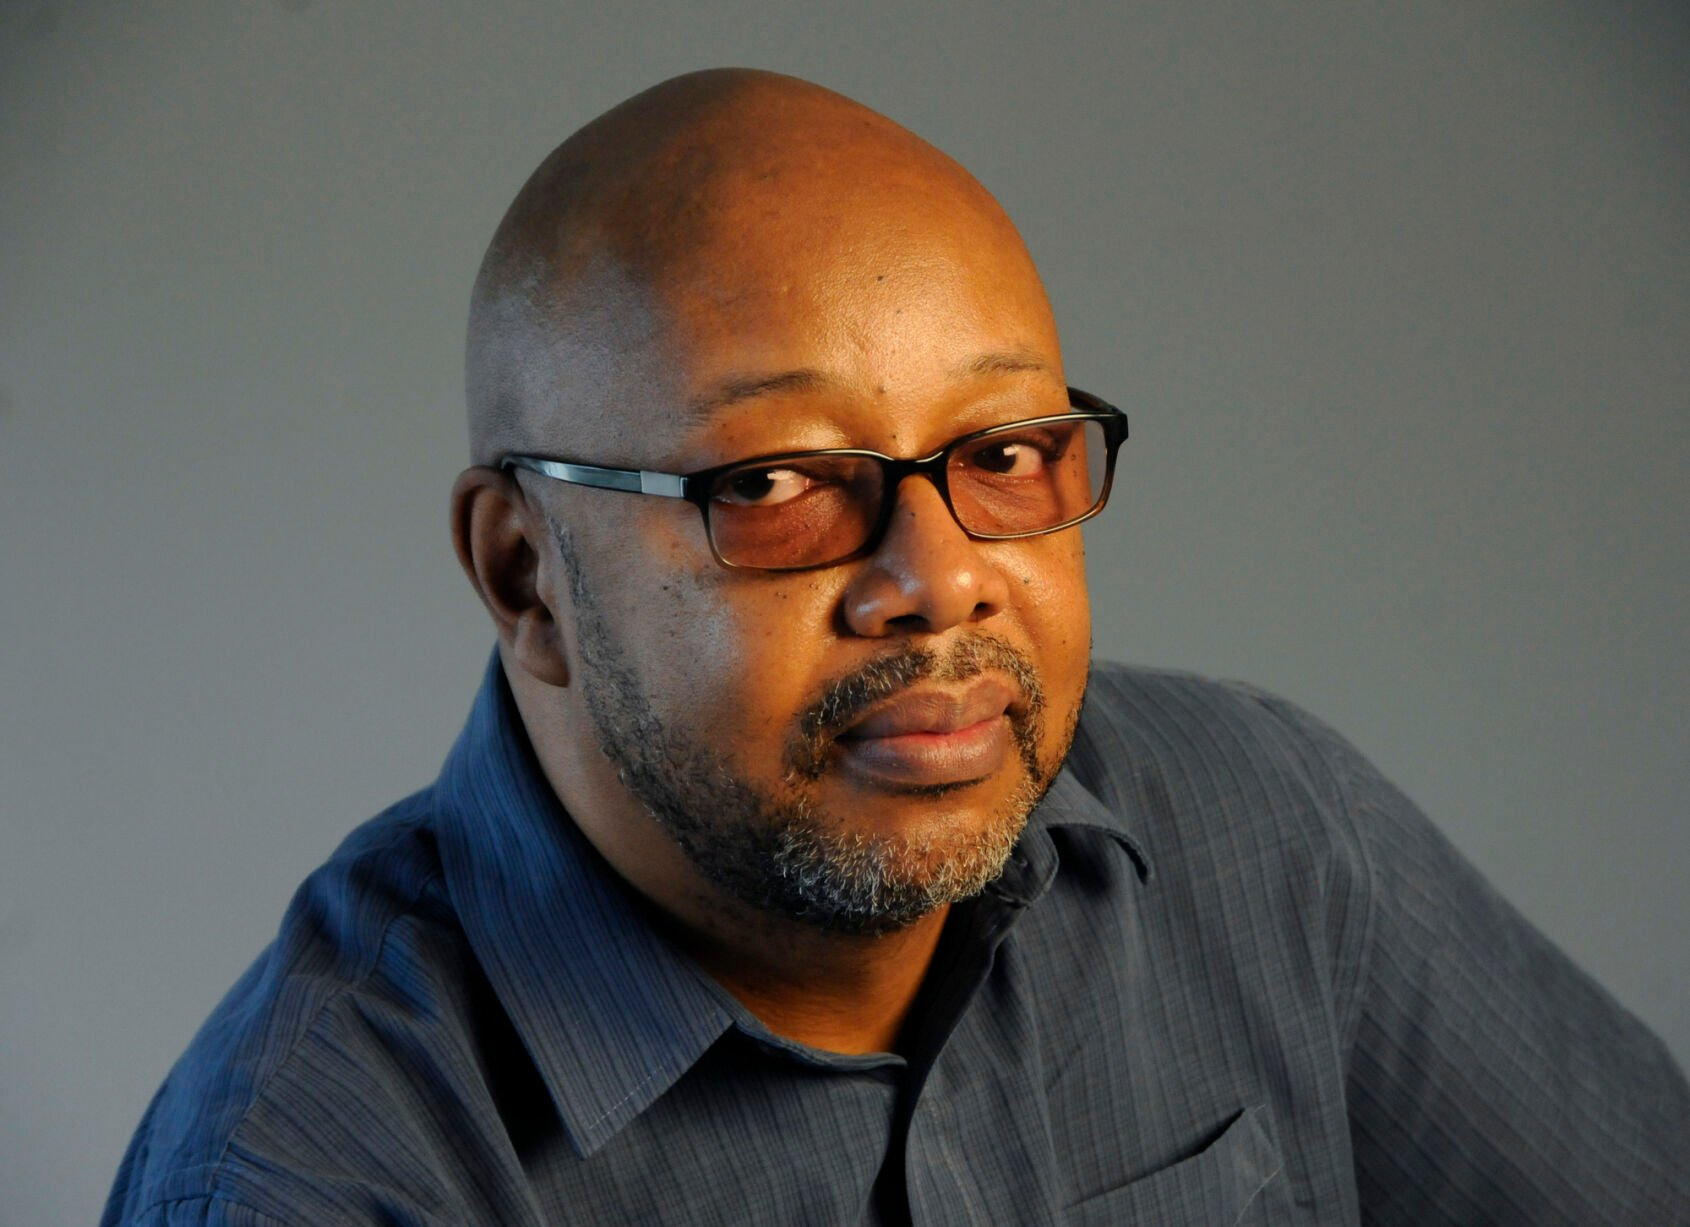 LEONARD PITTS: We can't endanger the lives of the many to humor the misconceptions of the few